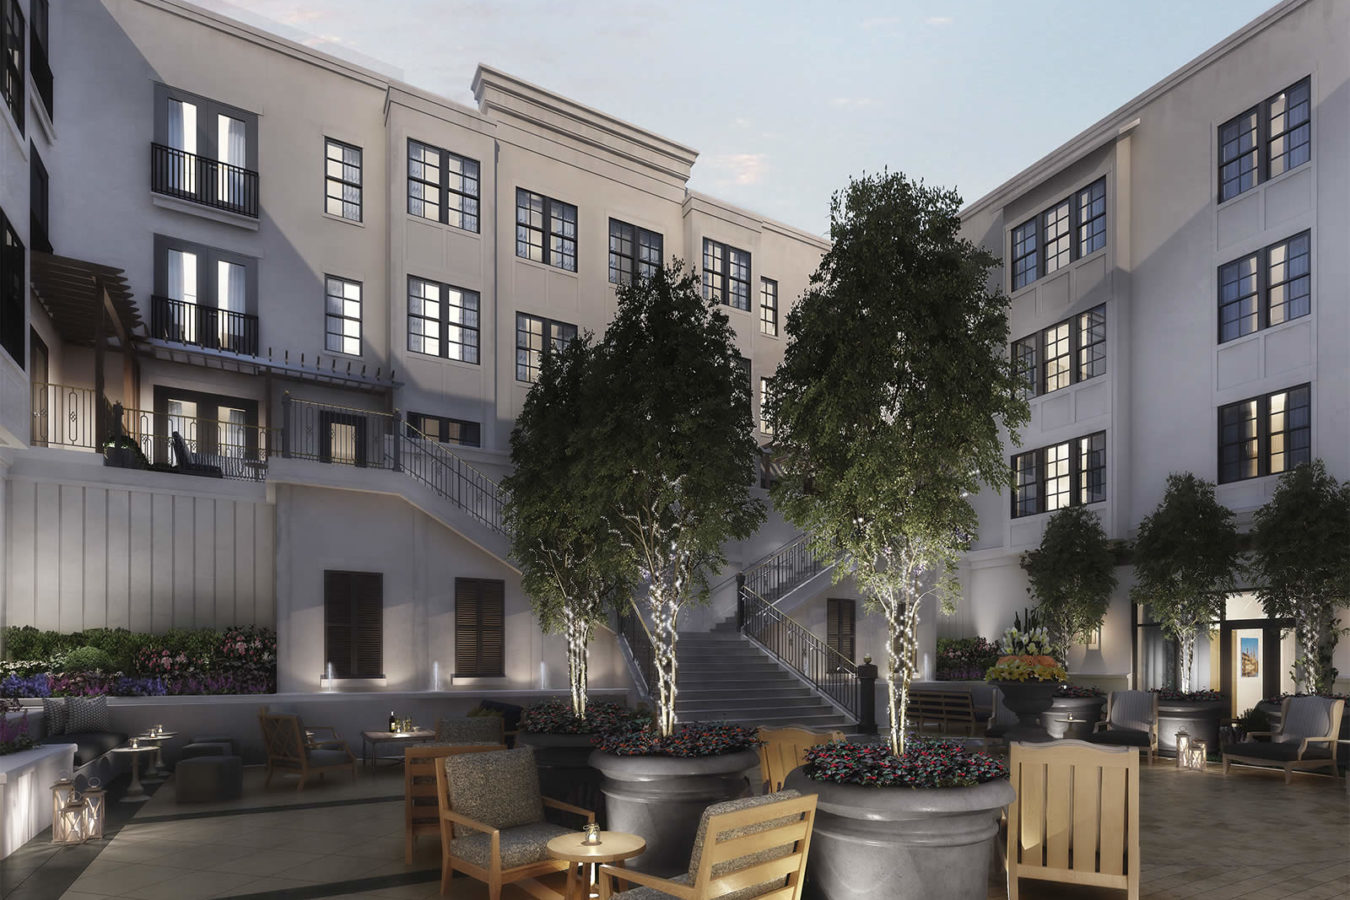 Rendering of the courtyard at the Harpeth Hotel